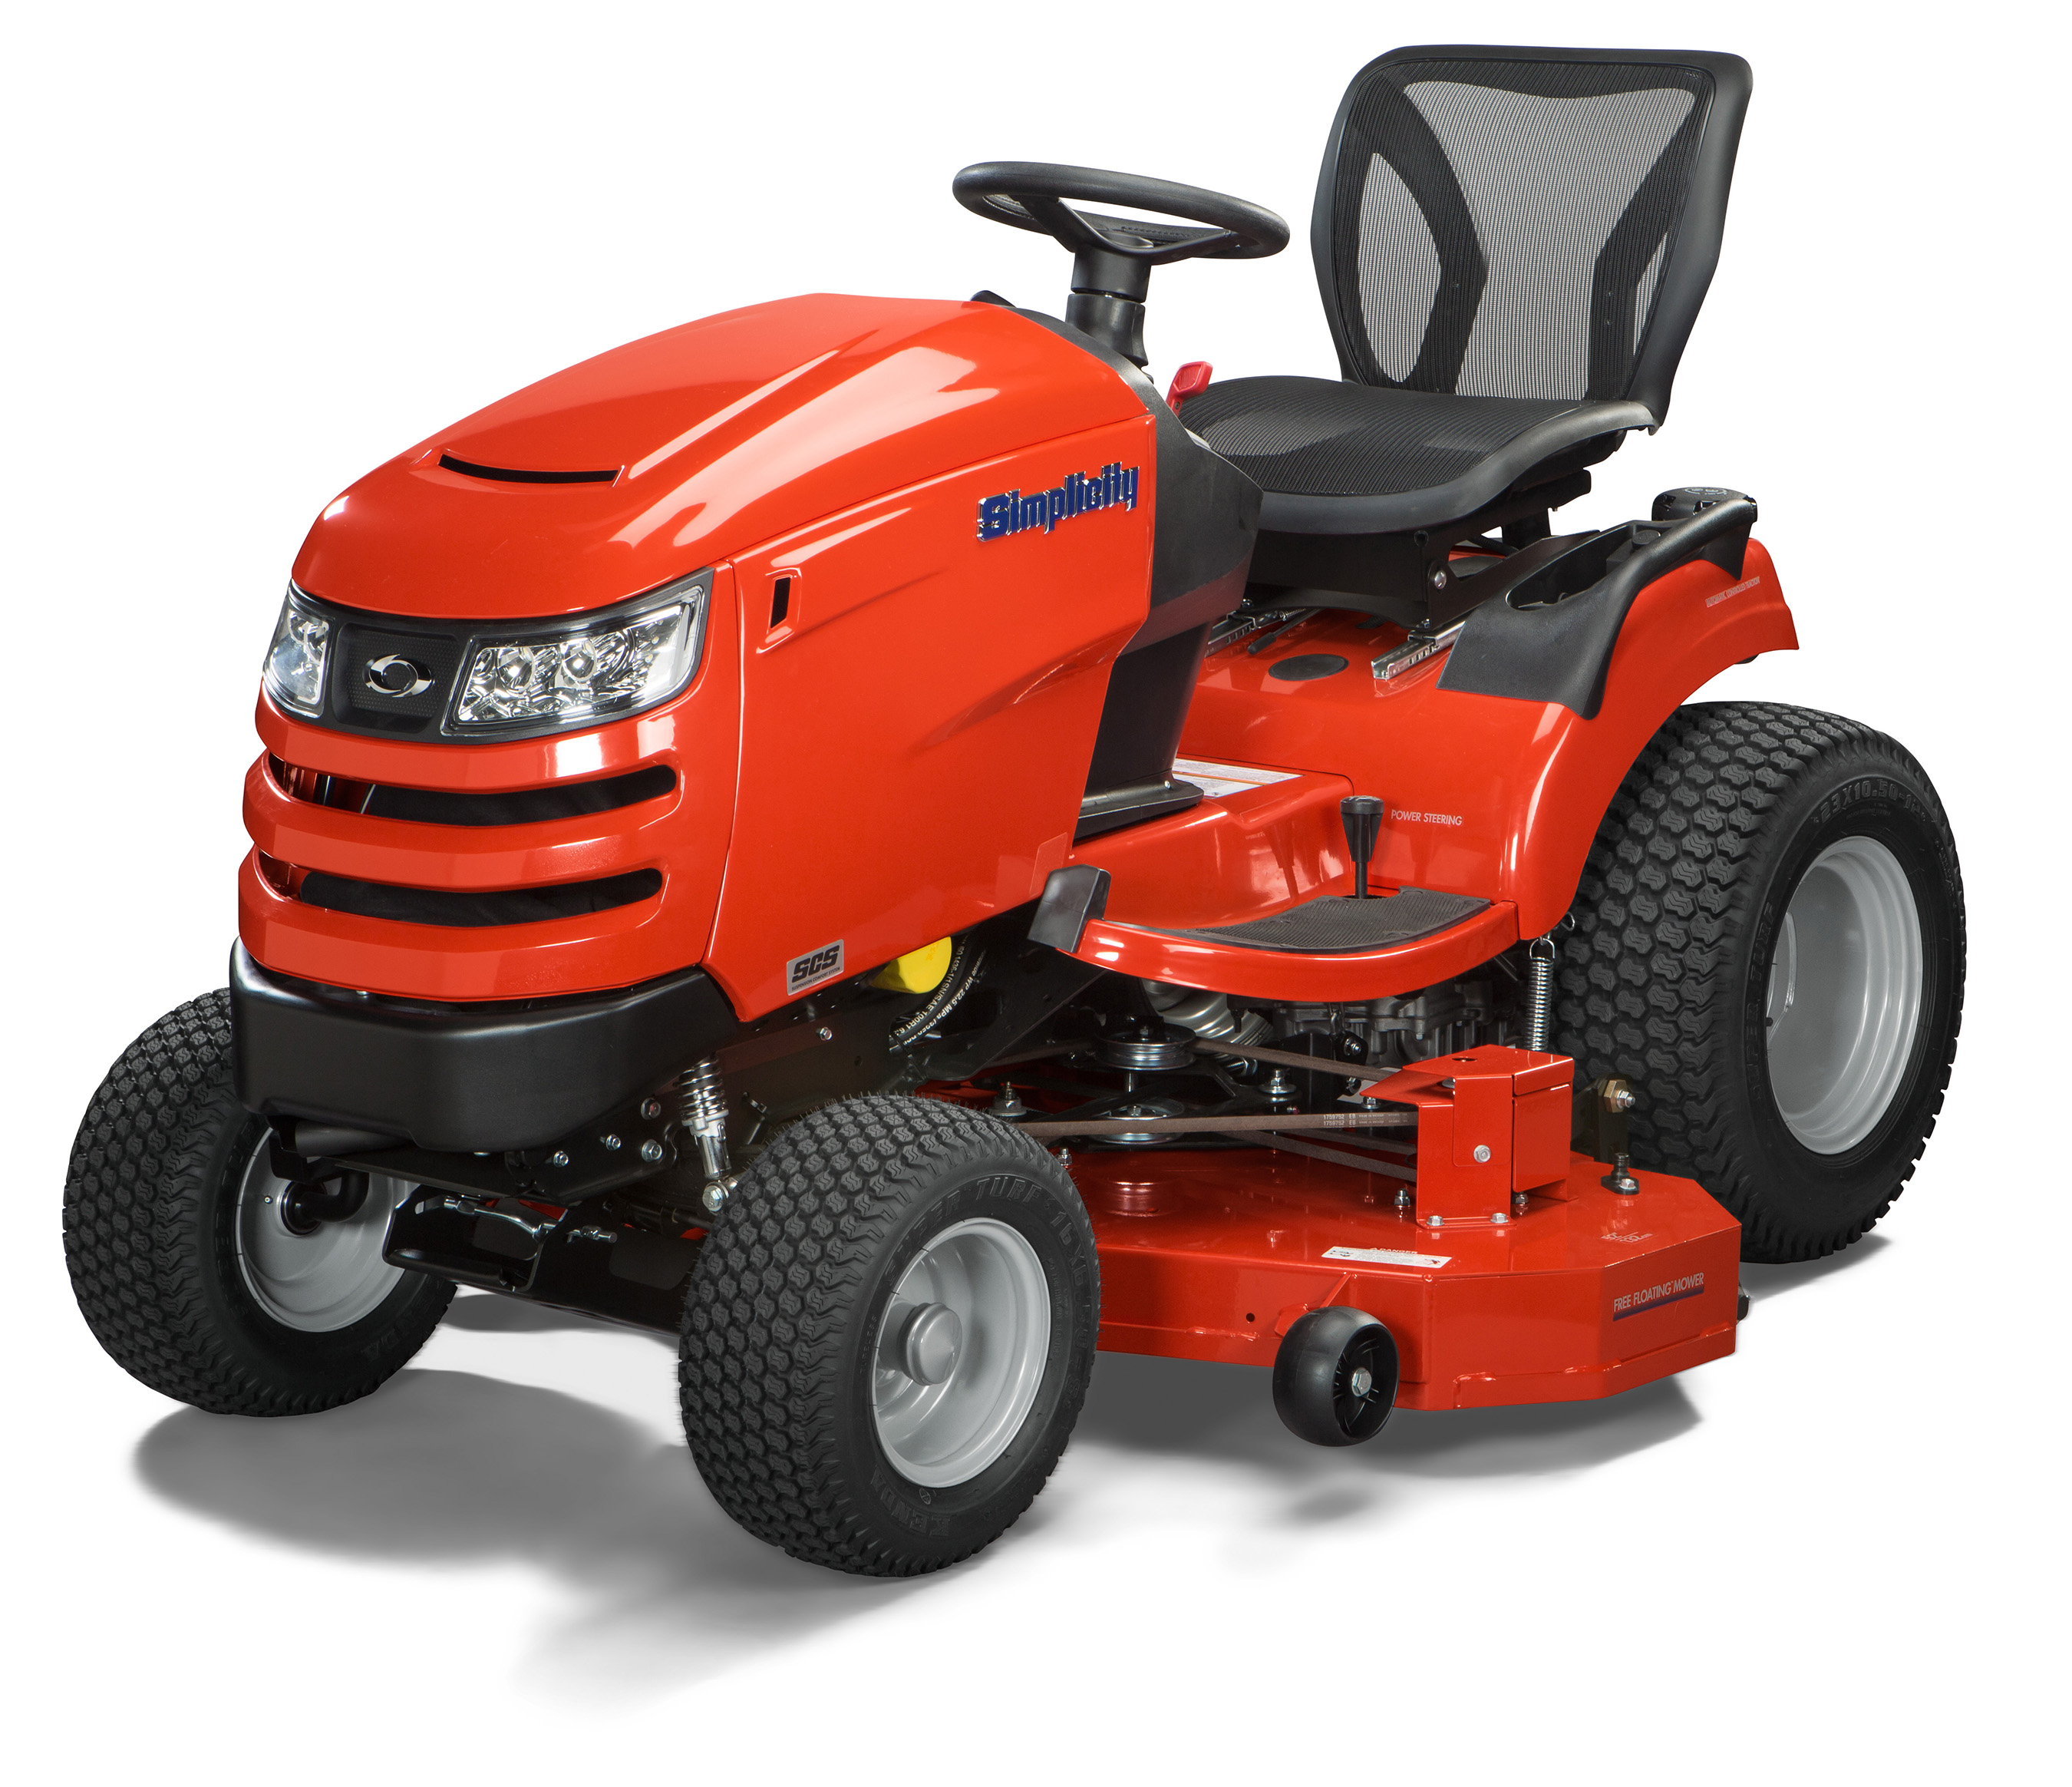 The Simplicity Prestige features a powerful Briggs & Stratton engine with electronic fuel injection, advanced traction control including a 4WD option, power steering and cruise control.